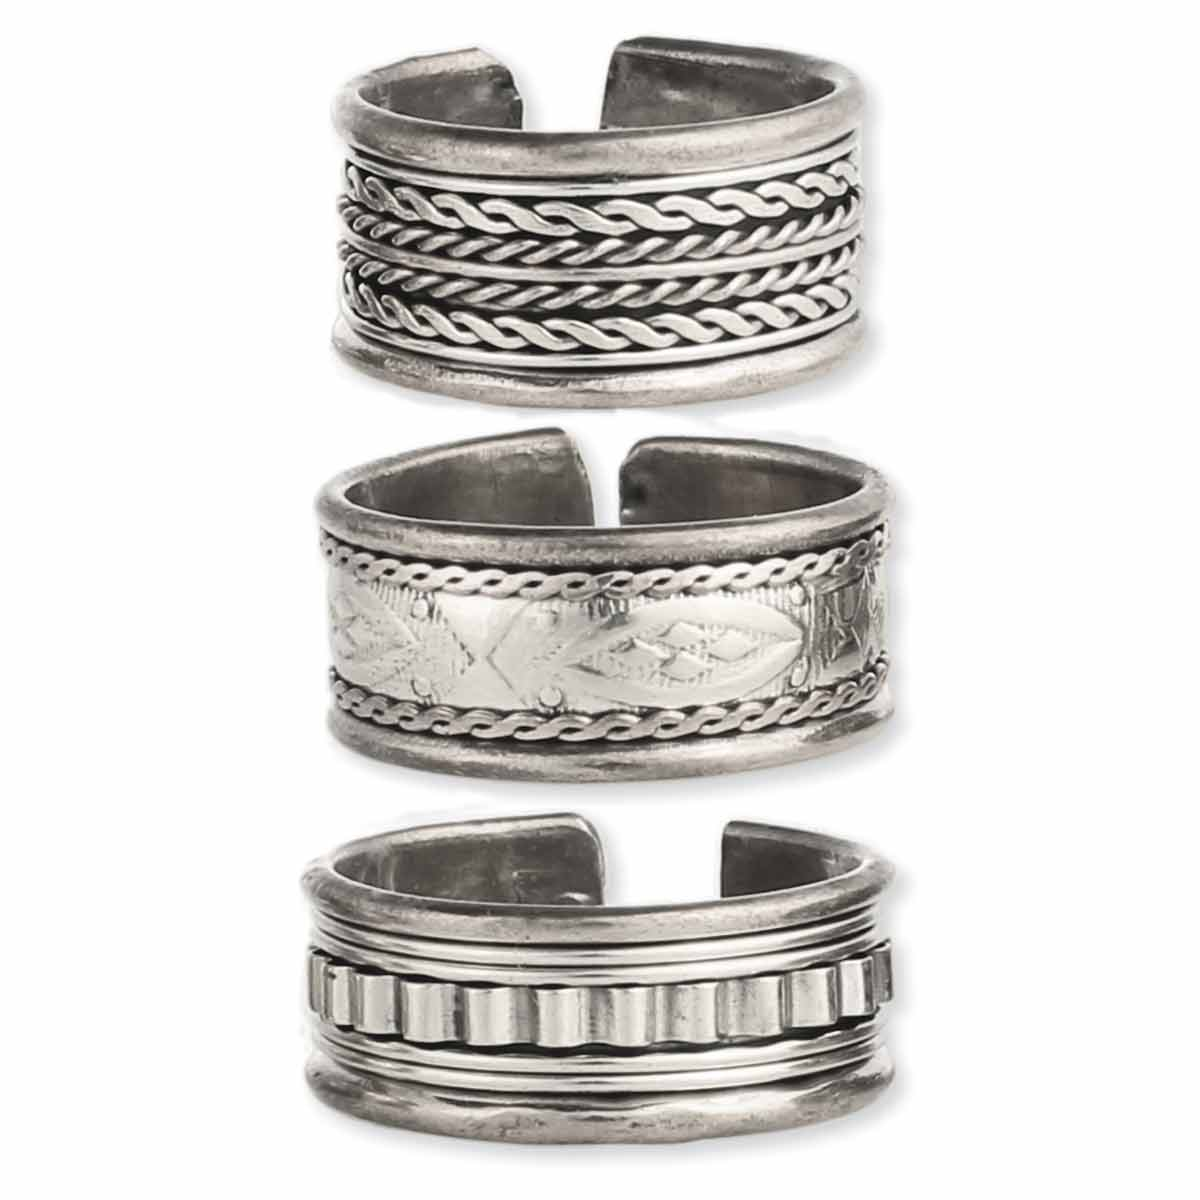 Silver band men's ring